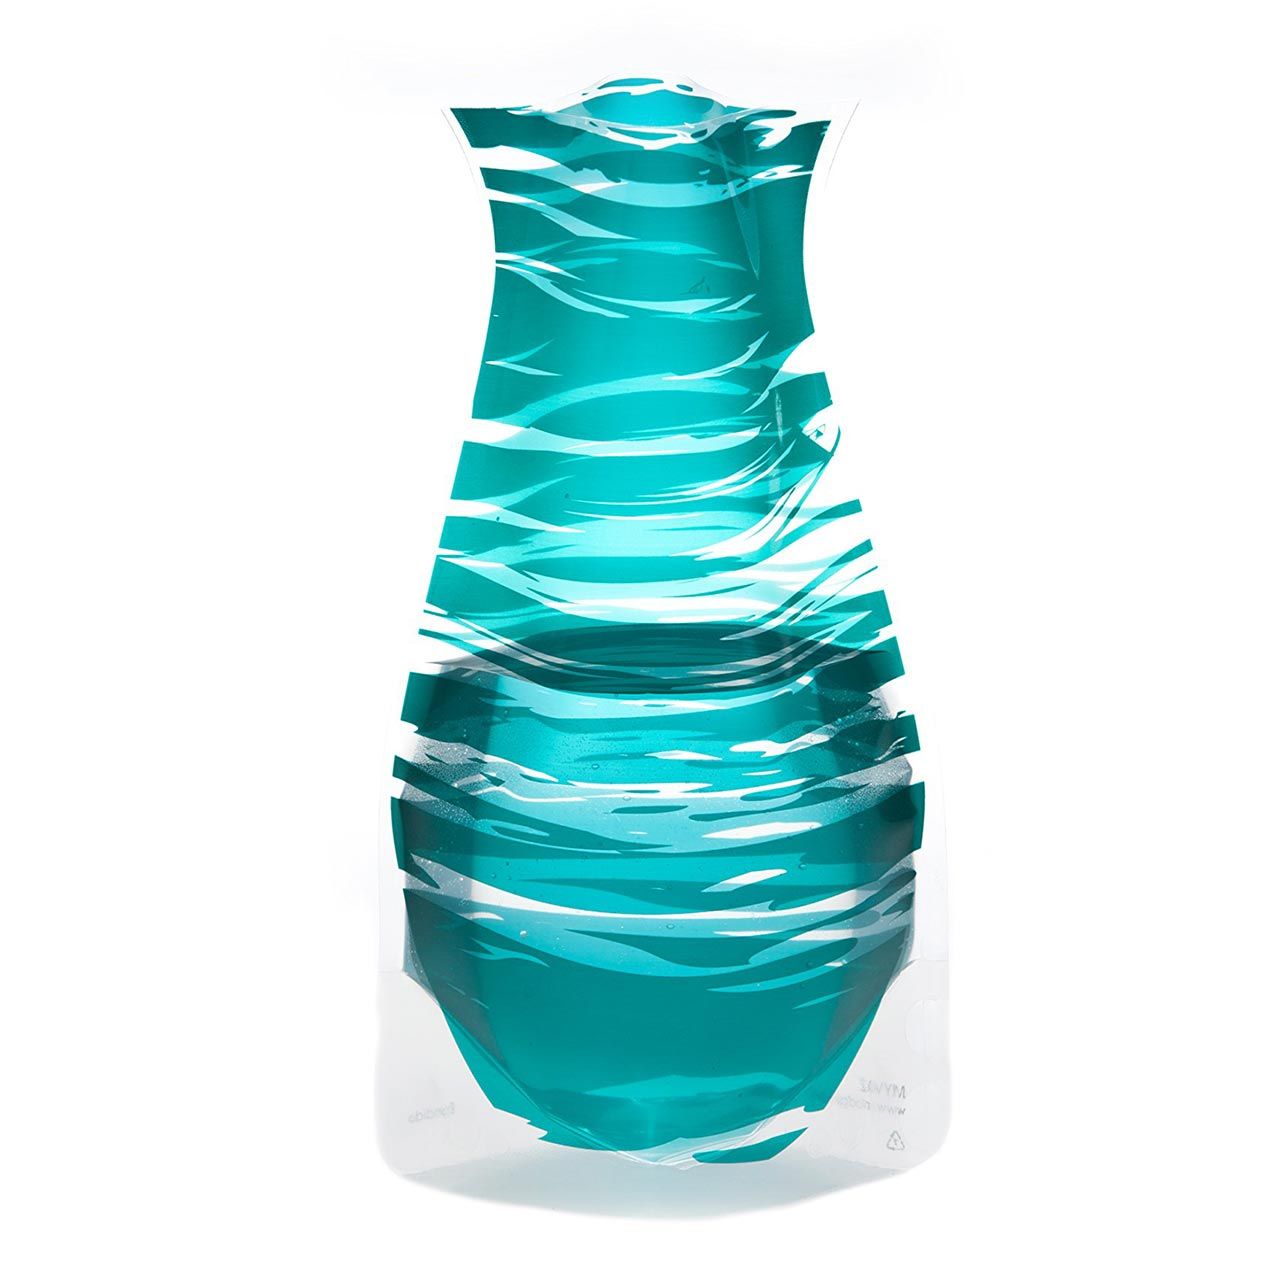 Expandable and Collapsible Vase Bandido Emerald | the design gift shop